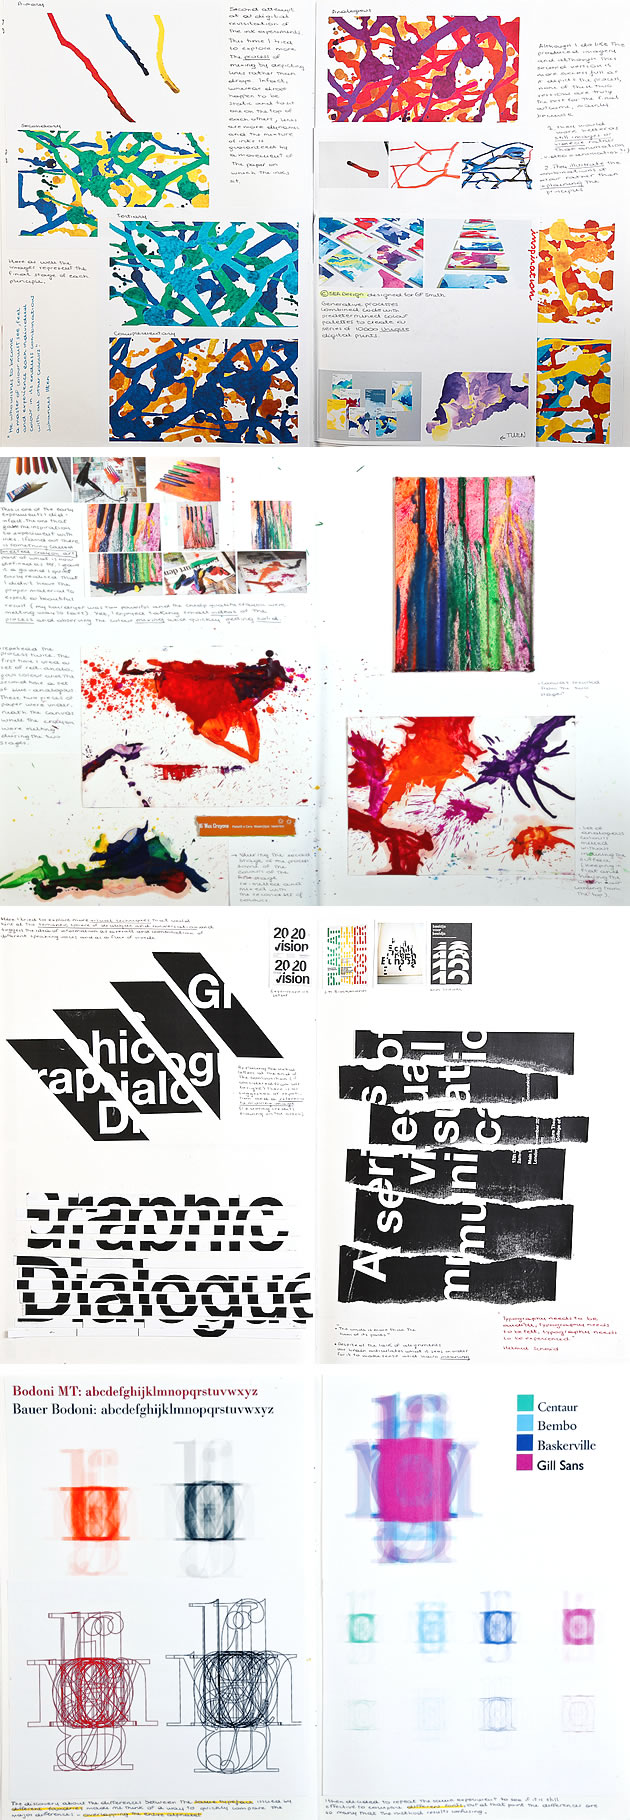 graphic design sketchbook ideas 22 inspirational examples design sketchbook experimentation